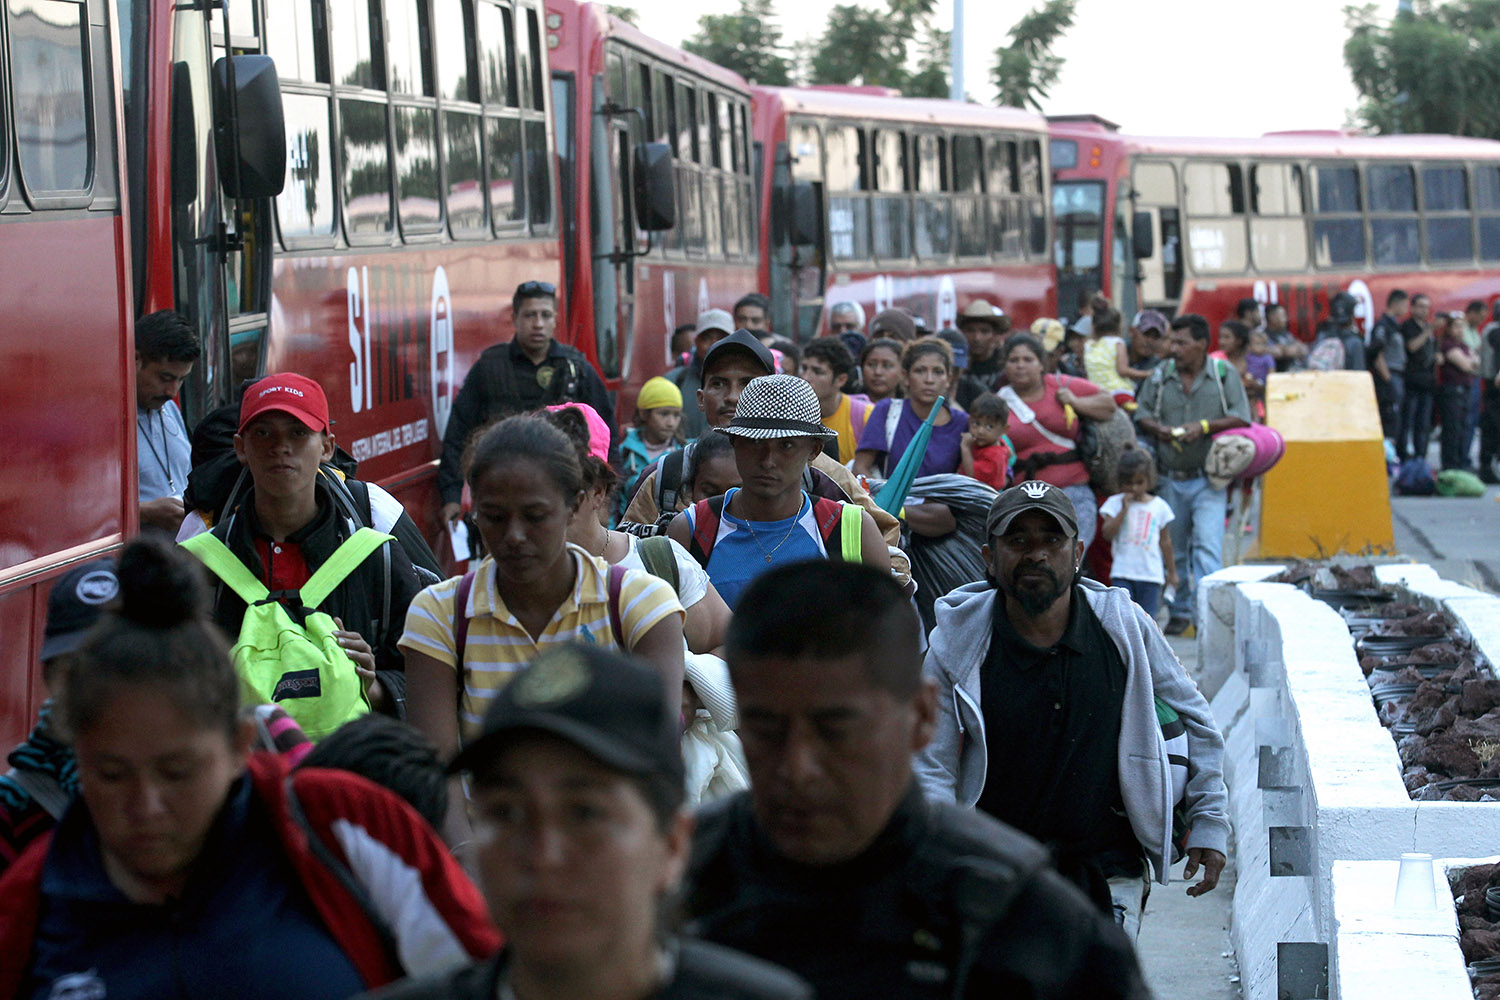 Central American migrants -mostly Hondurans- moving in a caravan towards the United States, board buses to head to a shelter in the outskirts of Zapotlanejo, Jalisco state, Mexico, on November 11, 2018. - The United States embarked Friday on a policy of automatically rejecting asylum claims of people who cross the Mexican border illegally in a bid to deter Central American migrants and force Mexico to handle them. ULISES RUIZ/AFP/Getty Images